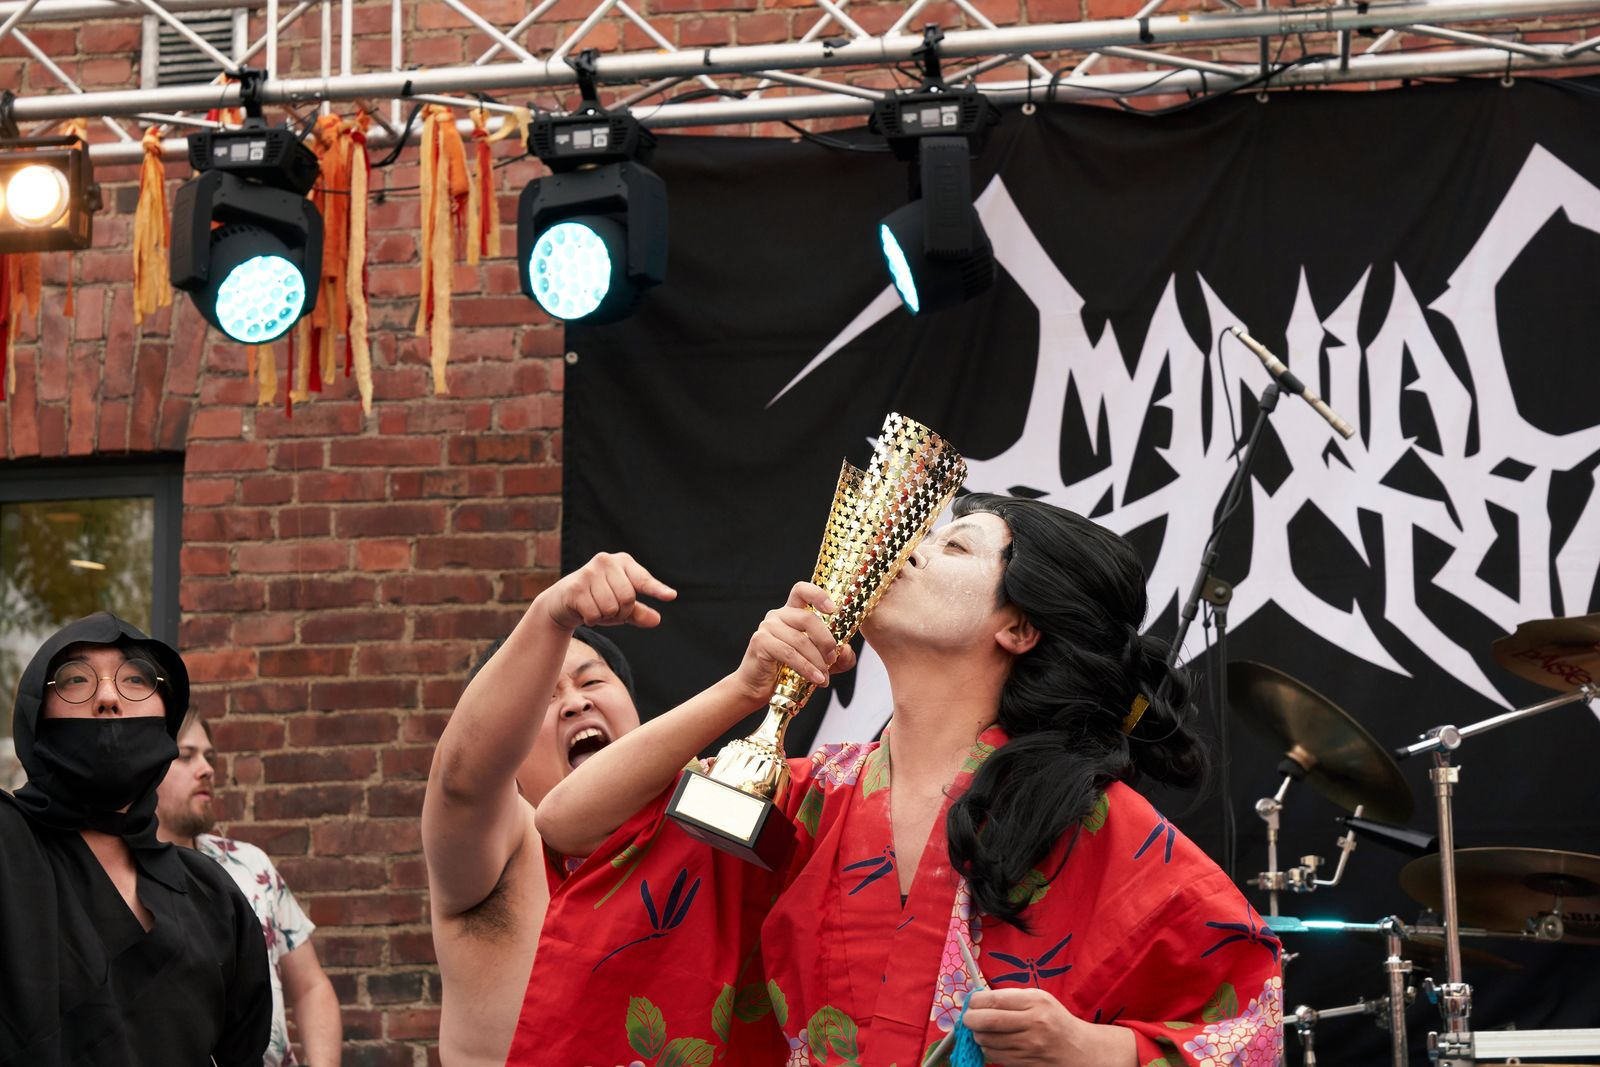 The Japanese team Giga Body Metal react with the trophy after being crowned Heavy Metal Knitting world champions with a show featuring crazy sumo wrestlers and team-leader Manabu Kaneko dressed in a traditional Japanese kimono knitting, Thursday, July 11, 2019 in Joensuu, Finland. (AP Photo/David Keyton)